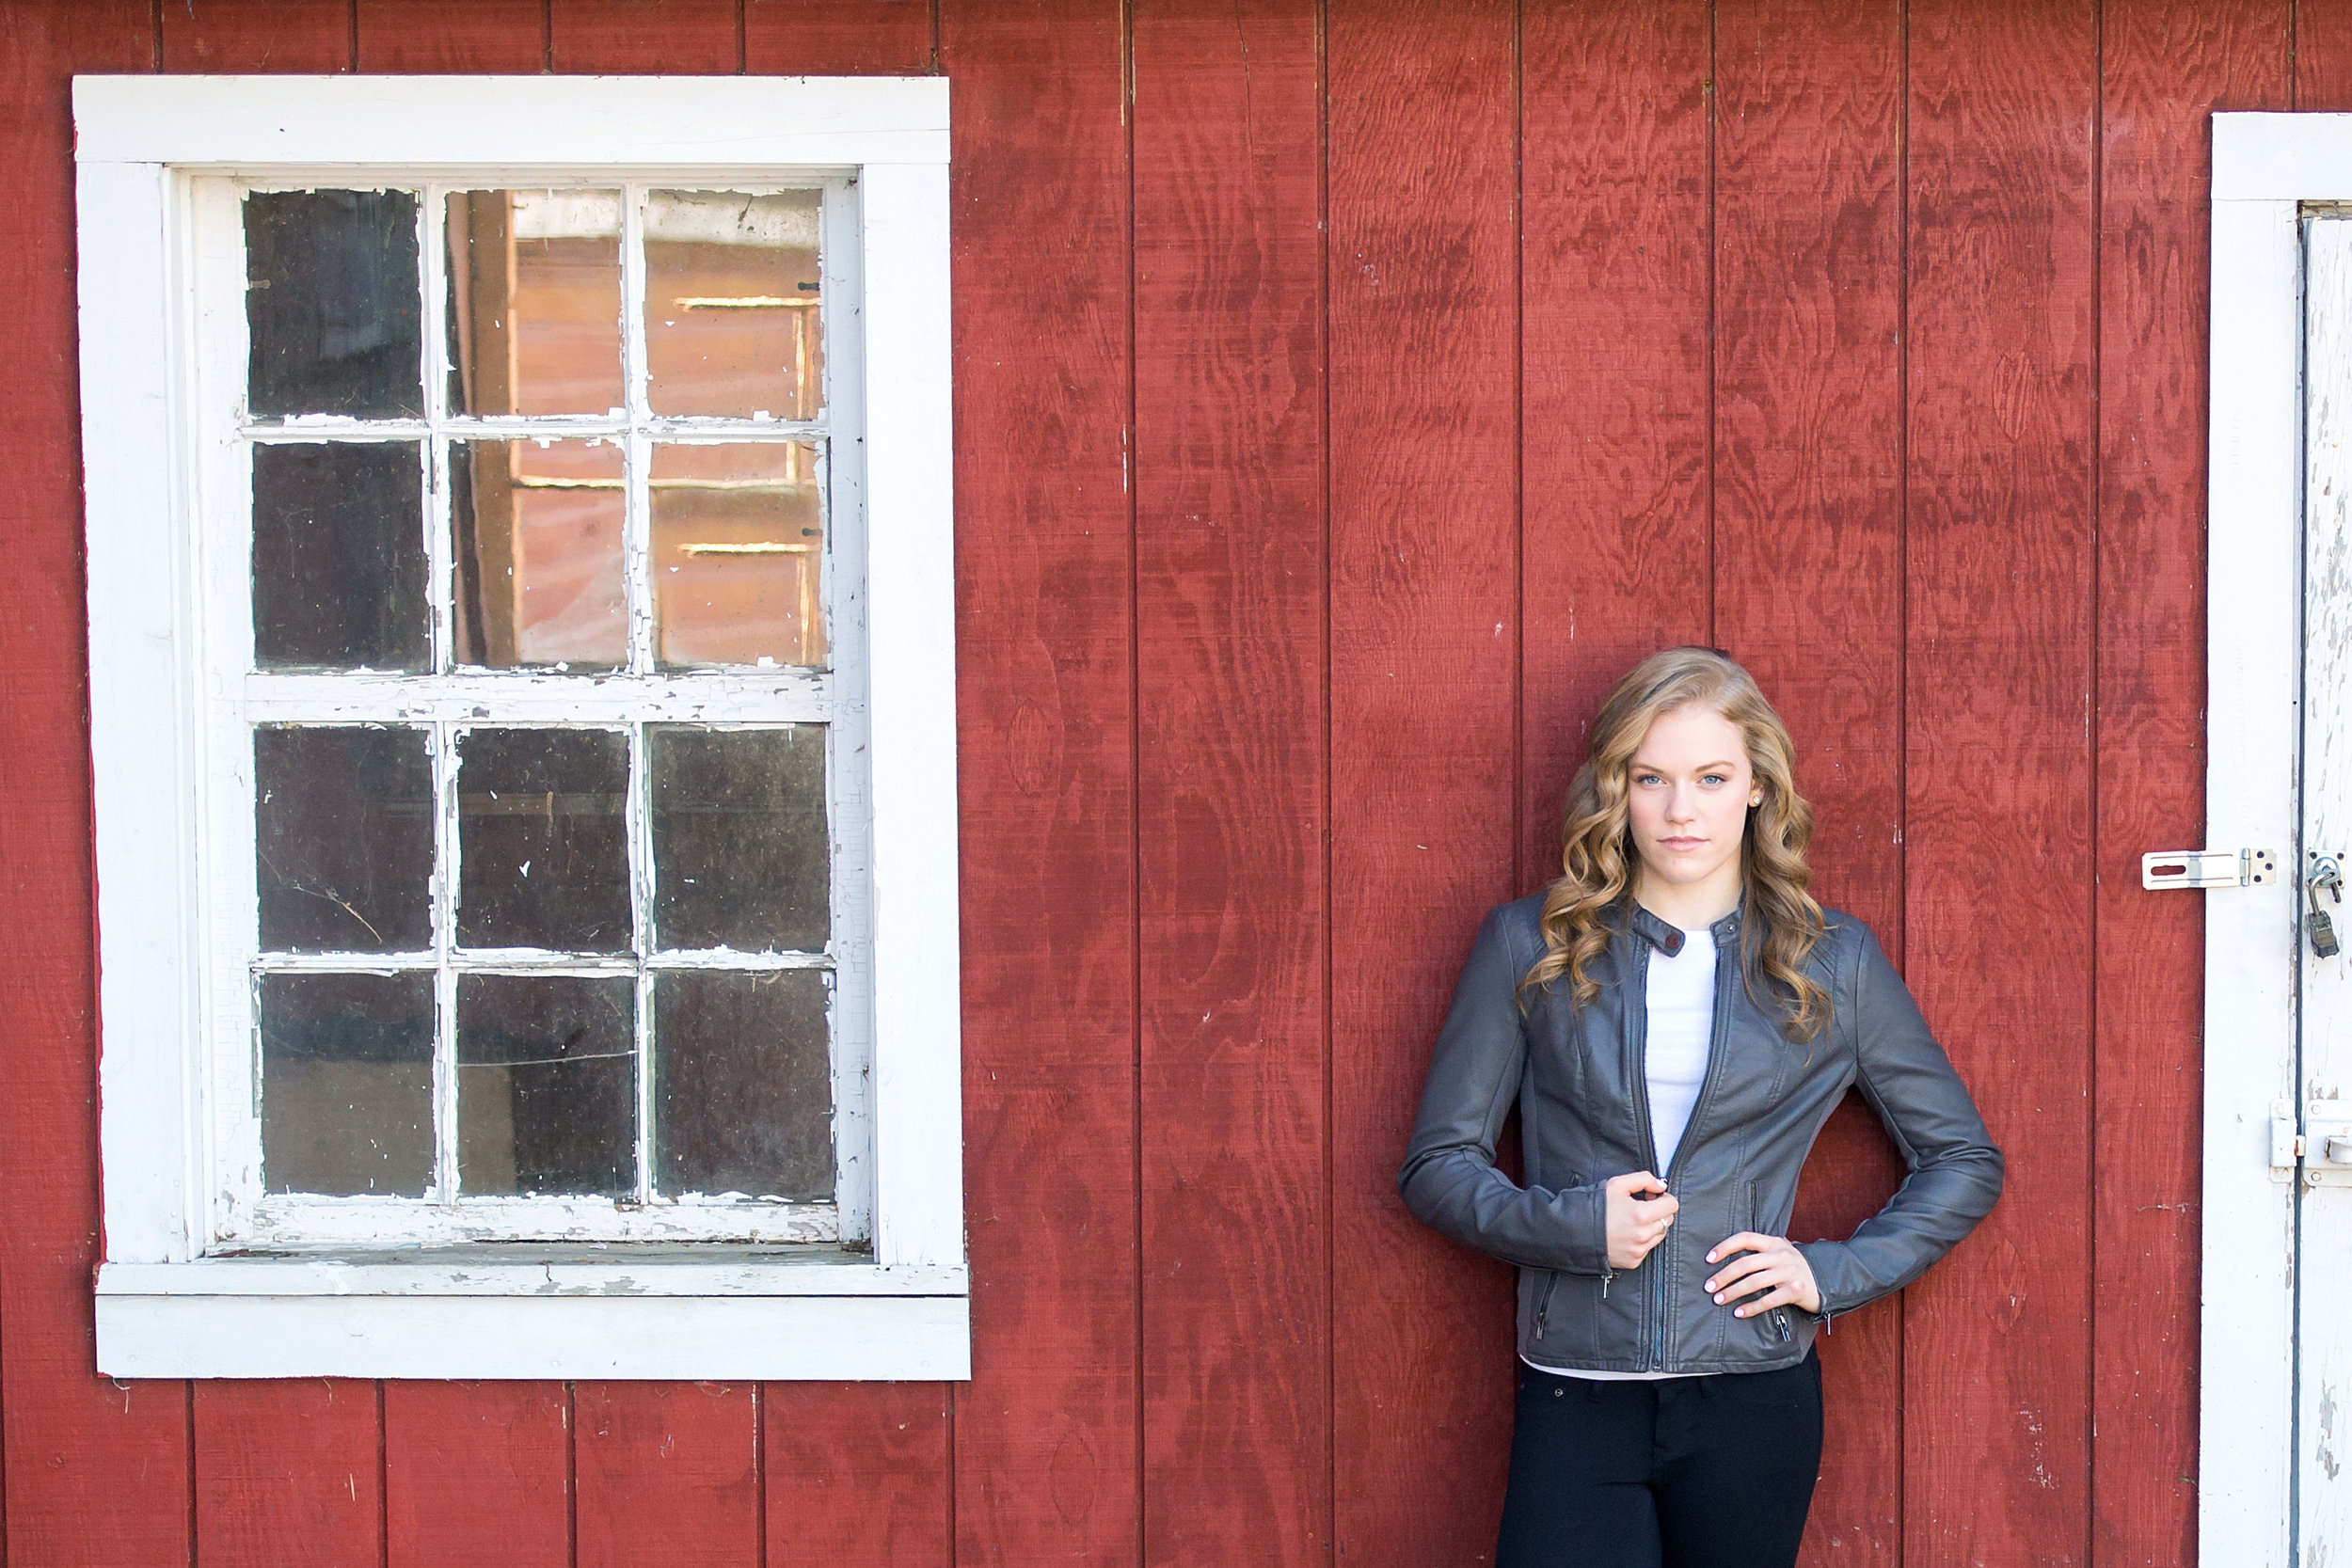 senior portraits - on location or at our studiochoose from 45 minutes to 3 hour sessions